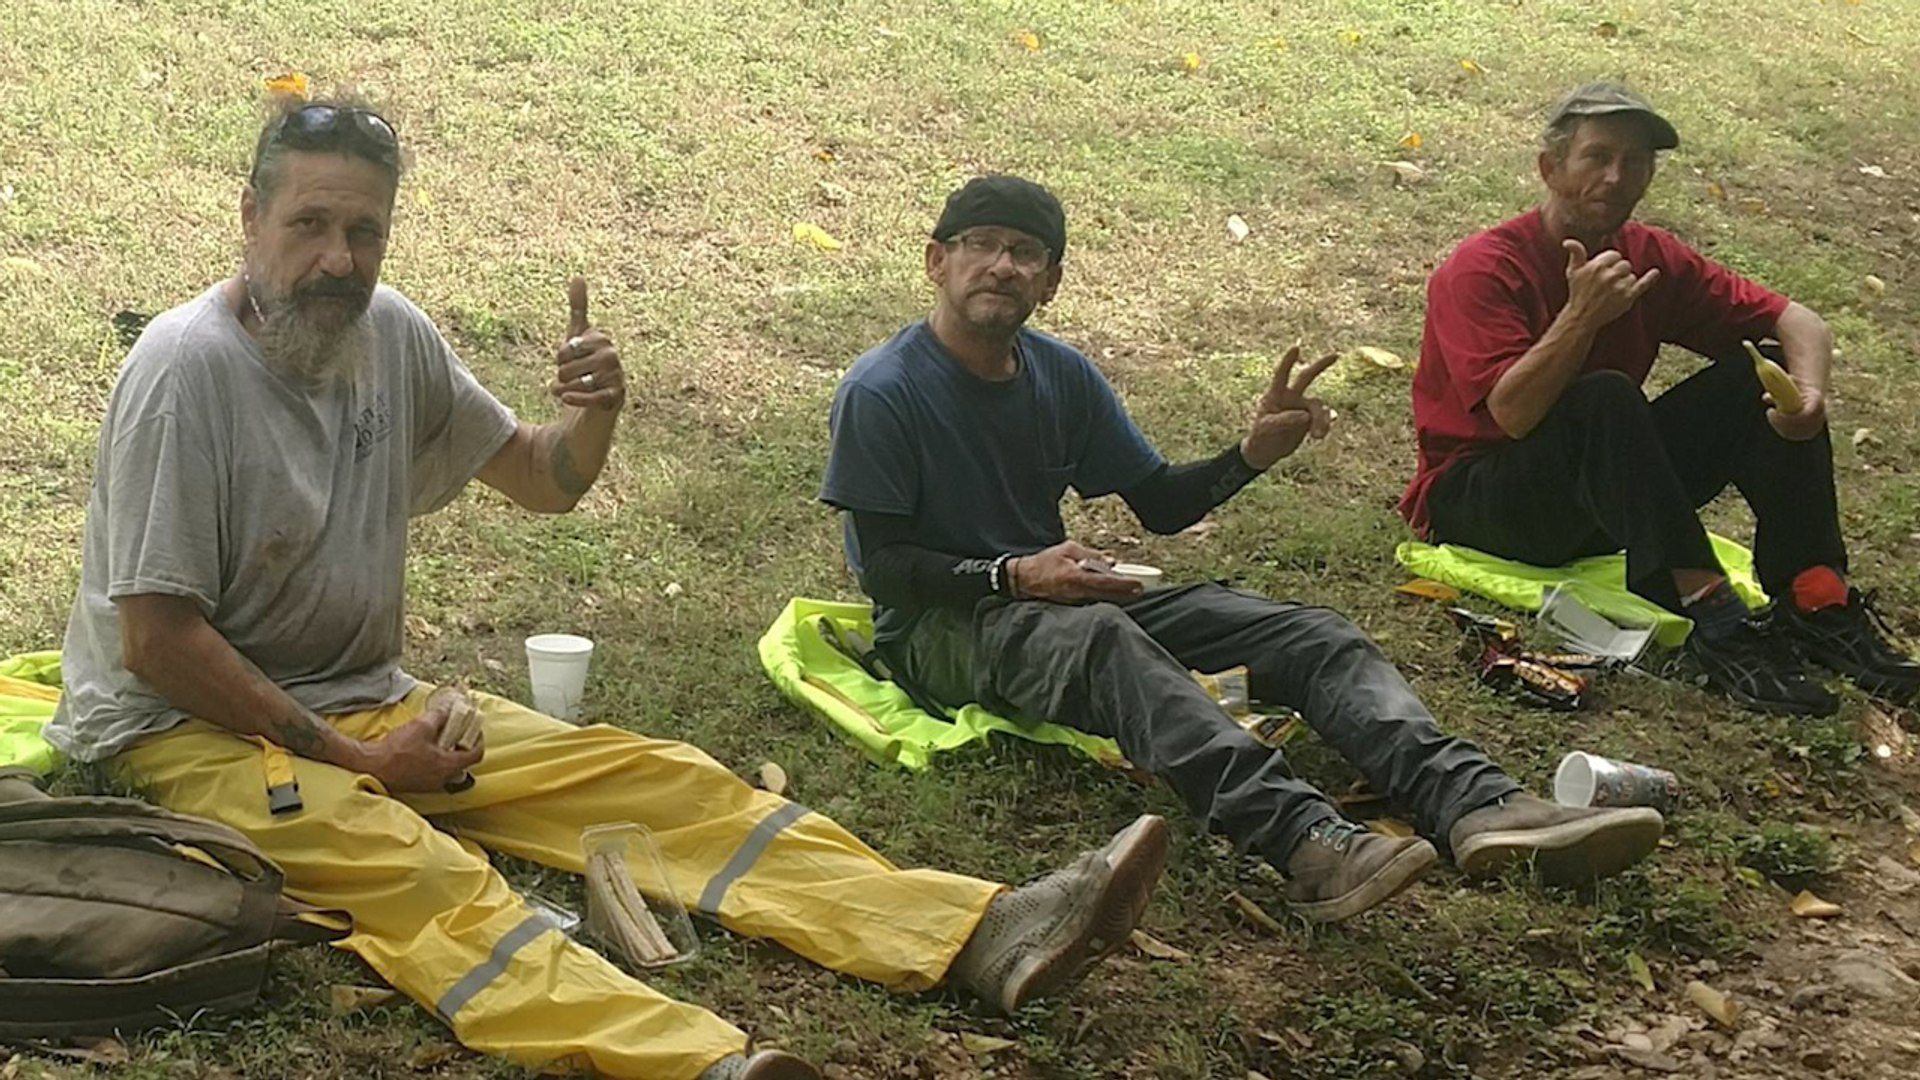 Austin Non-Profit Providing Jobs For Homeless And A Cleaner City